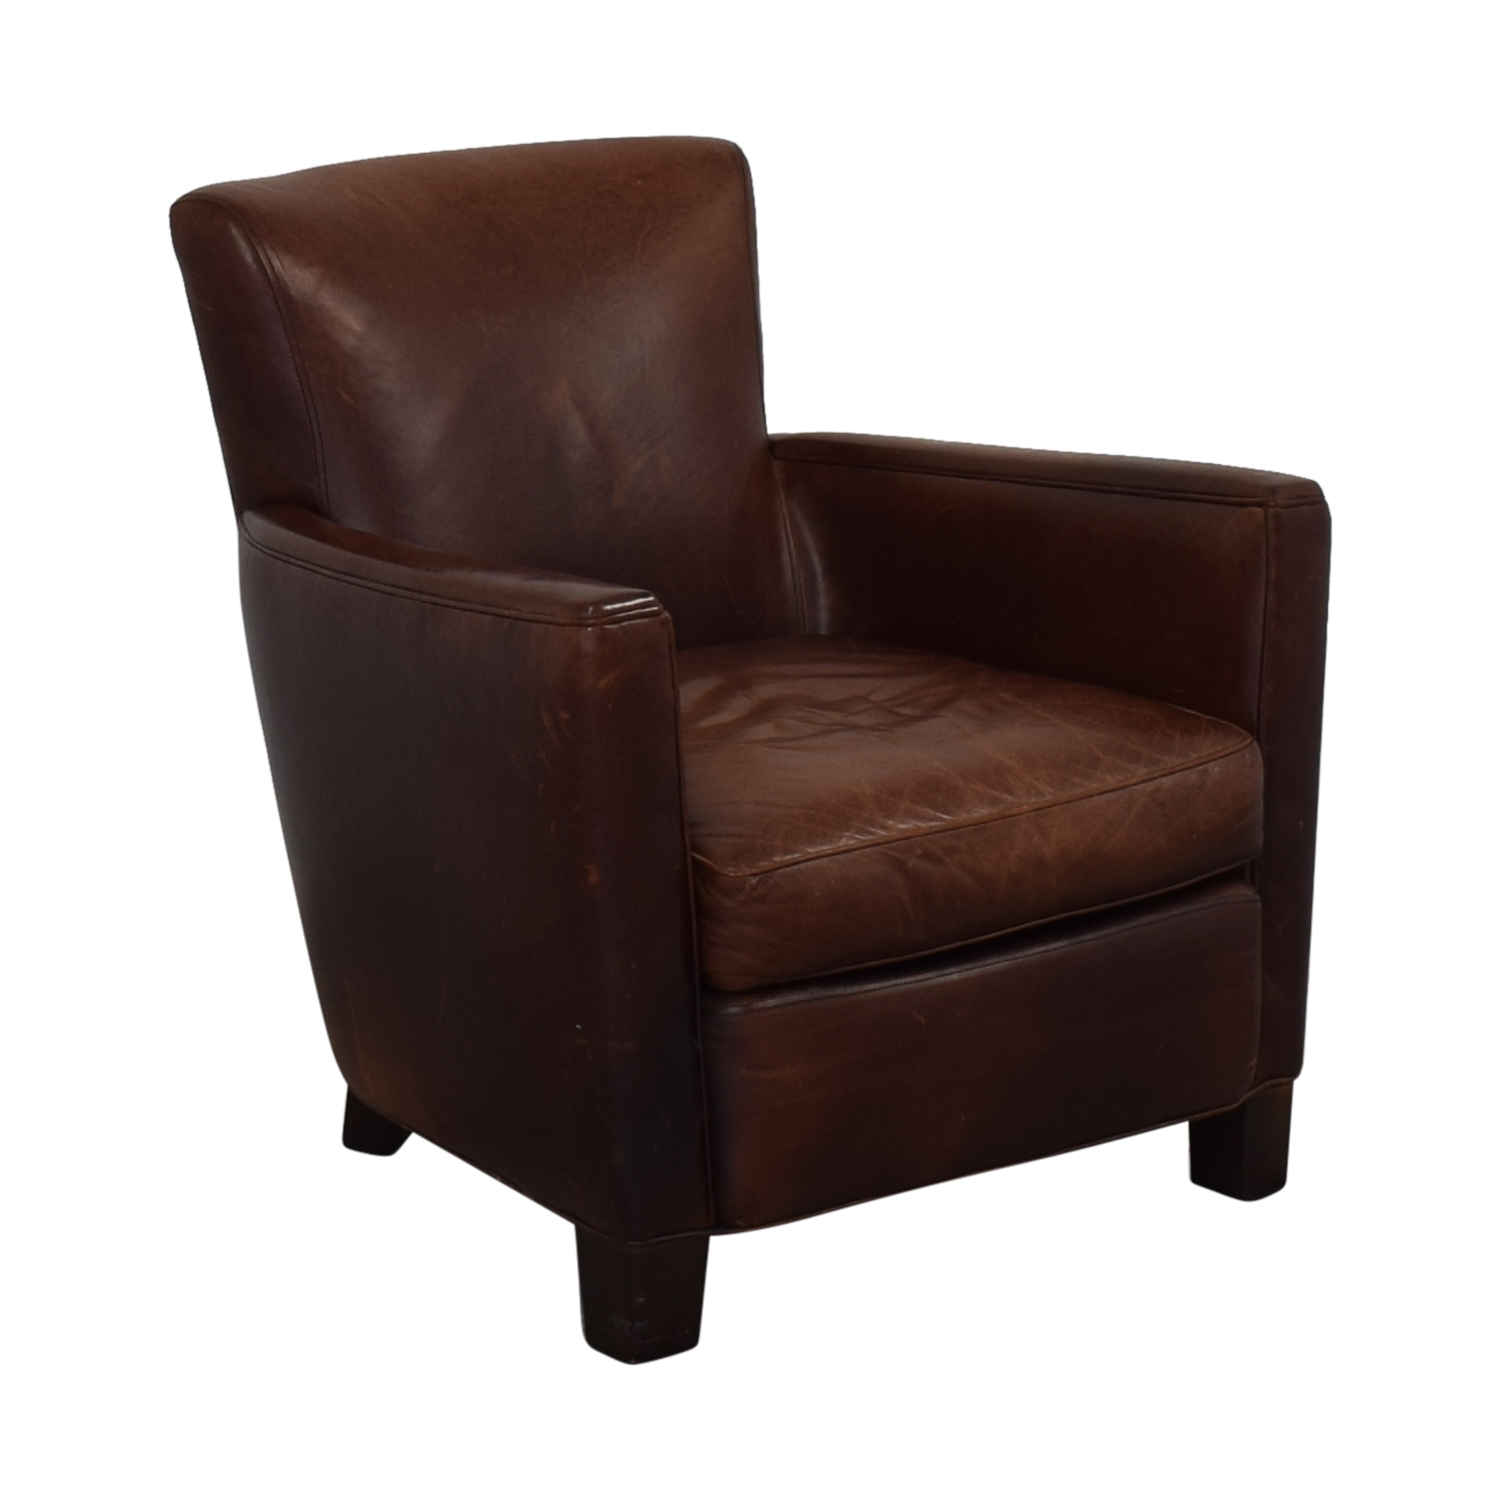 Crate & Barrel Briarwood Armchair / Chairs